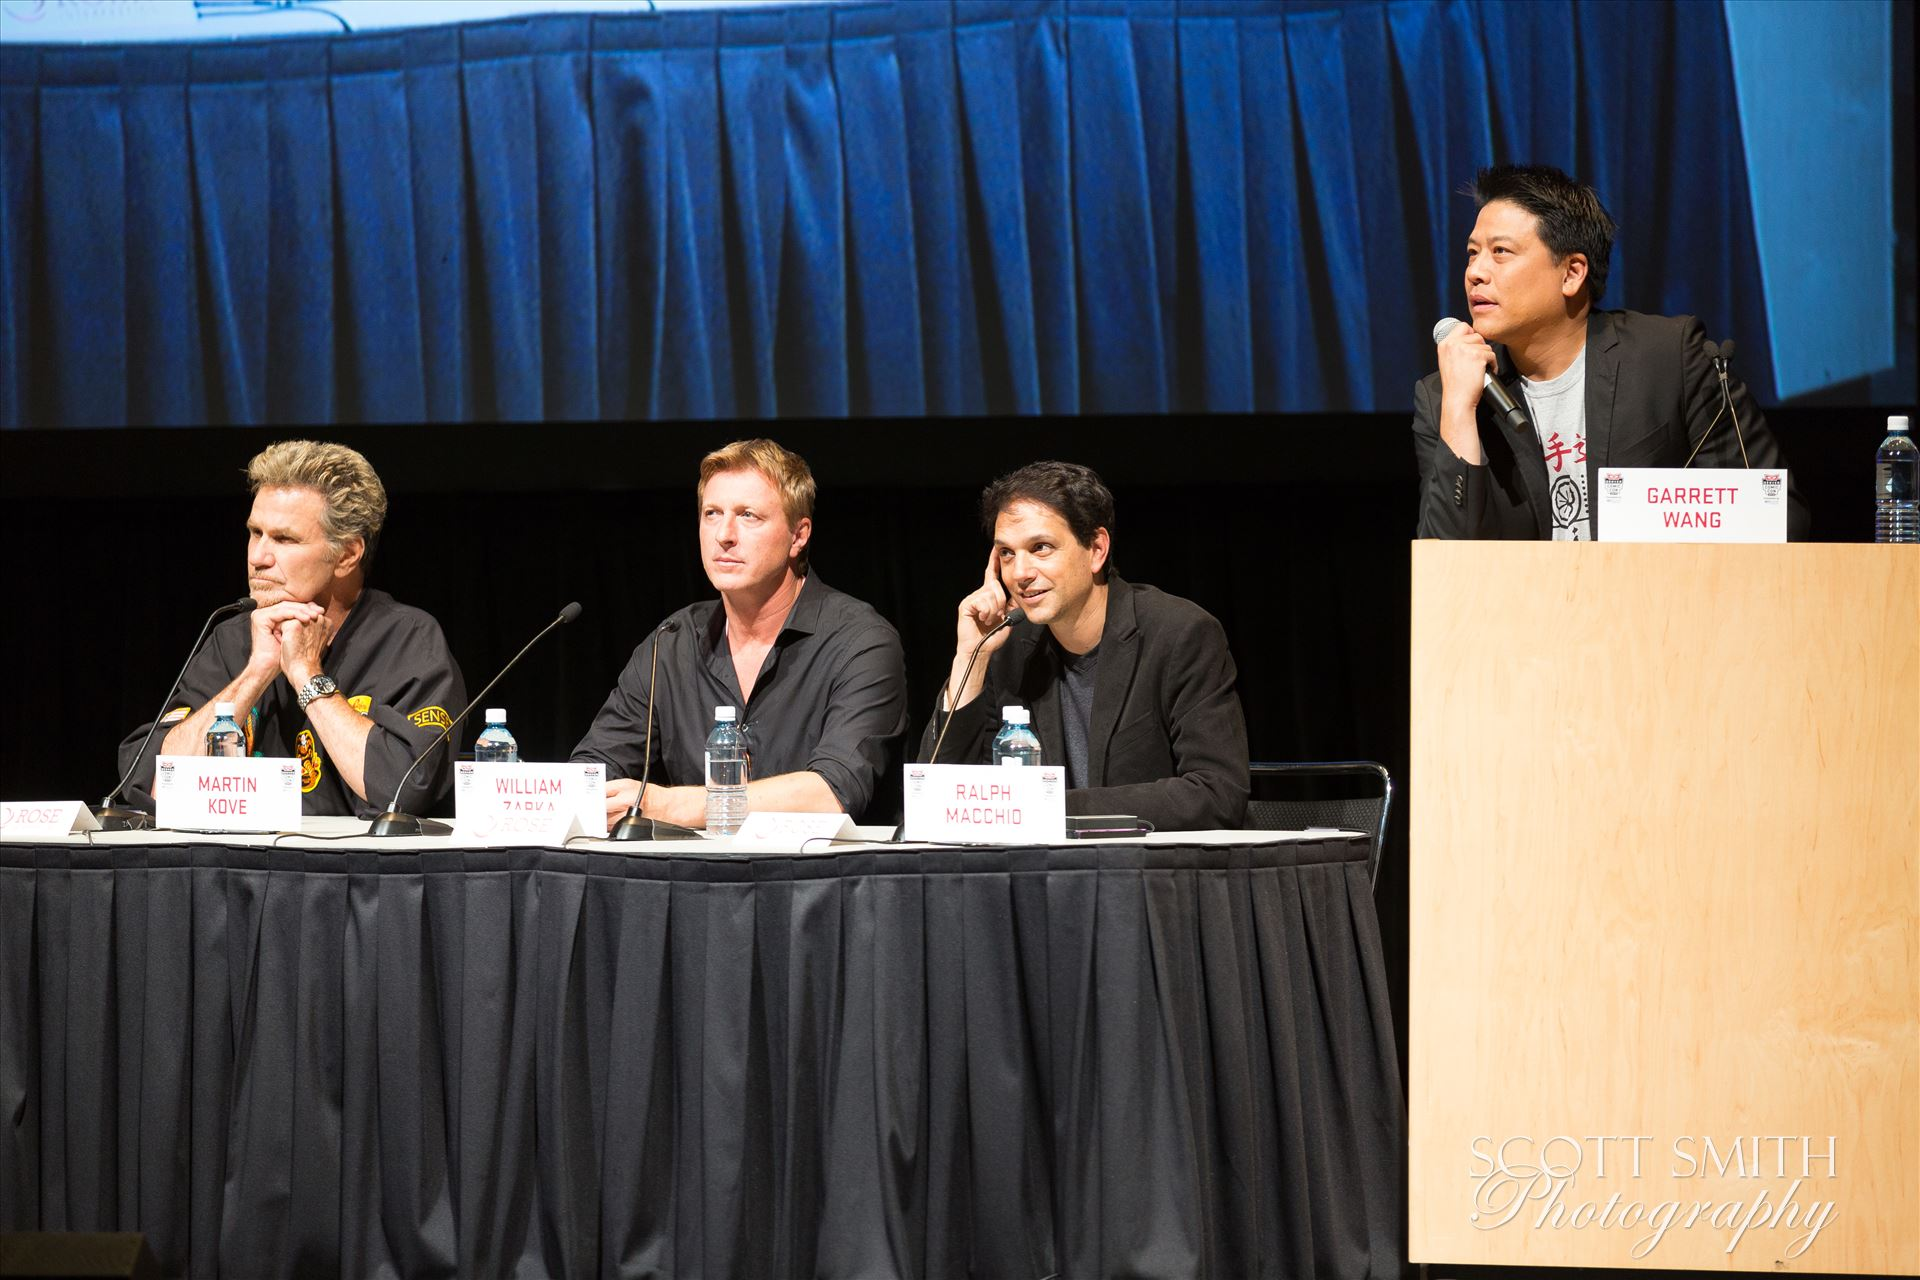 Denver Comic Con 2016 39 - Denver Comic Con 2016 at the Colorado Convention Center. Garrett Wang, Ralph Macchio, Martin Kove and William Zabka. by D Scott Smith